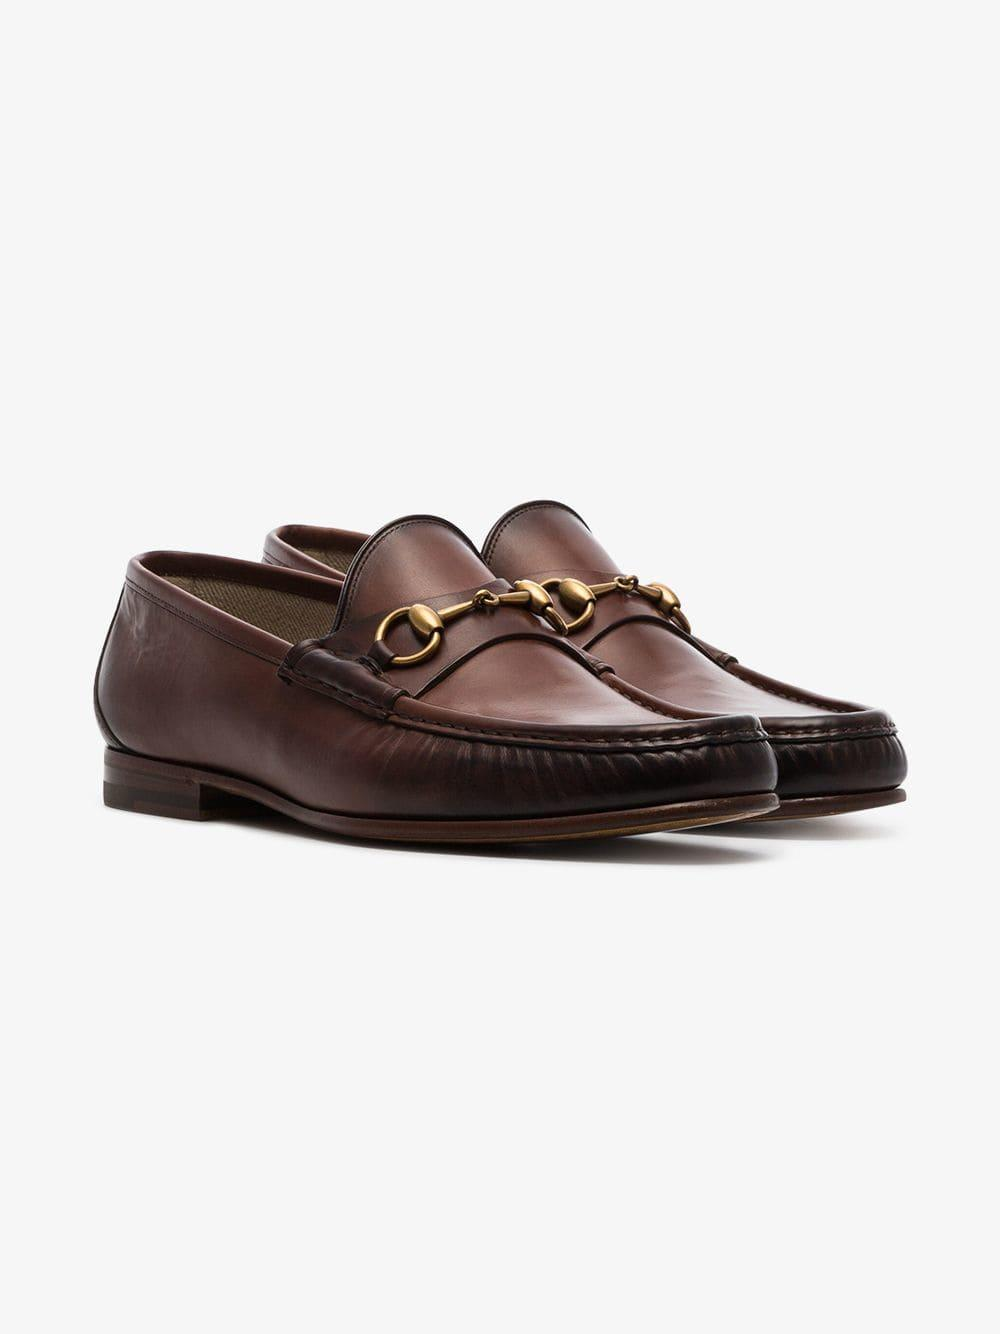 f2f44e8d007 Lyst - Gucci Brown 1953 Horesbit Leather Loafers in Brown for Men